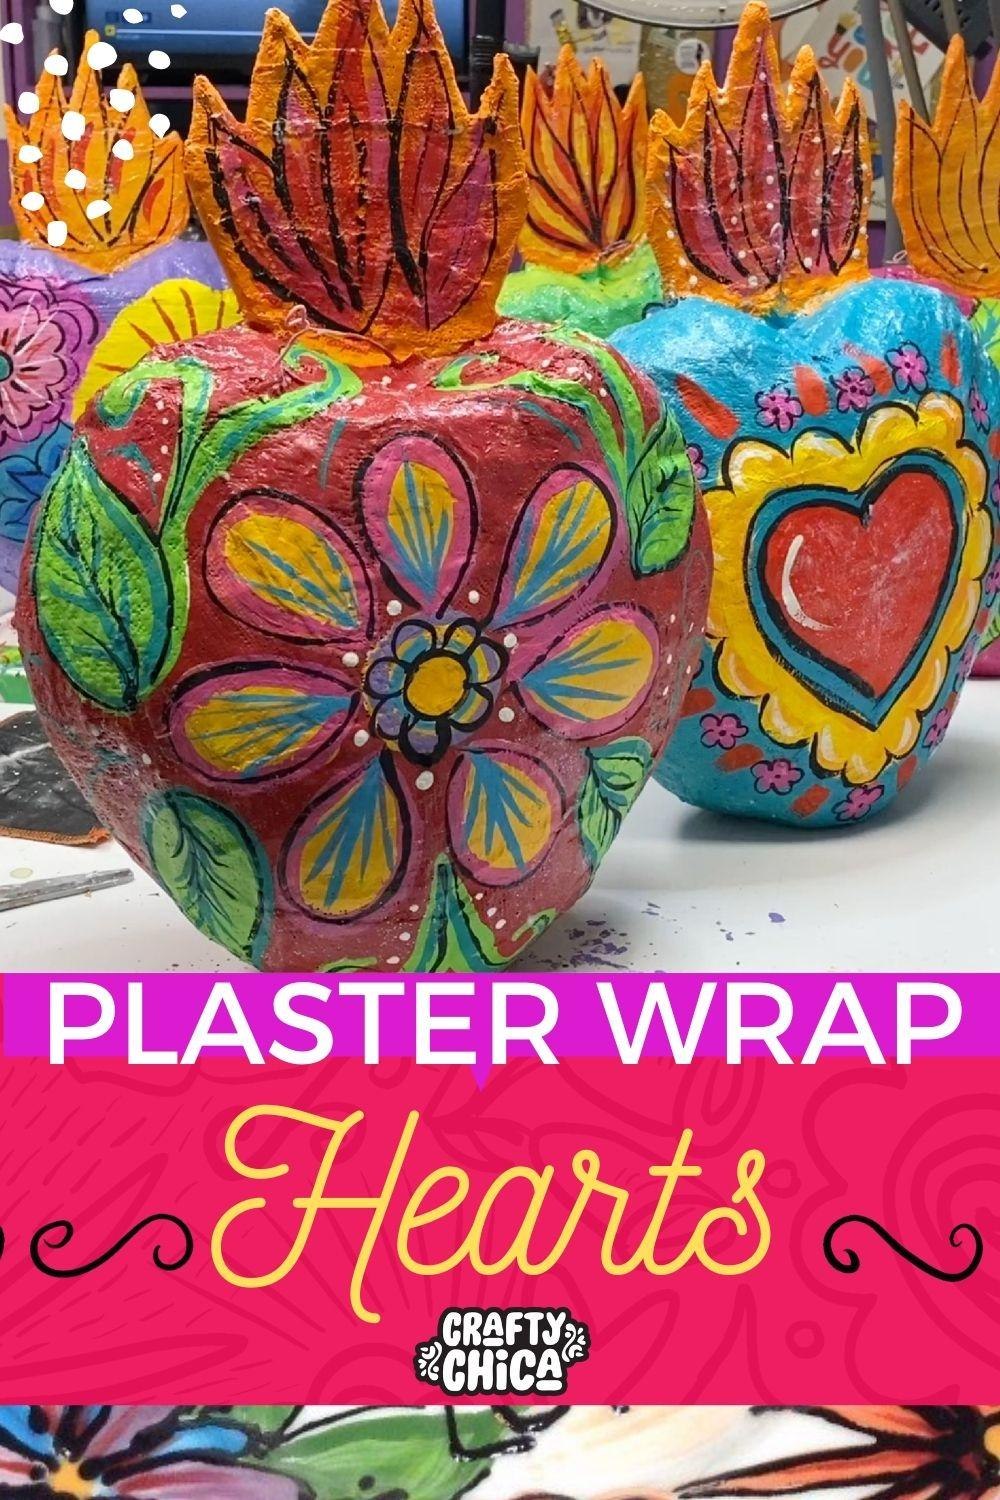 How to make plaster wrap hearts! #craftychica #papermache